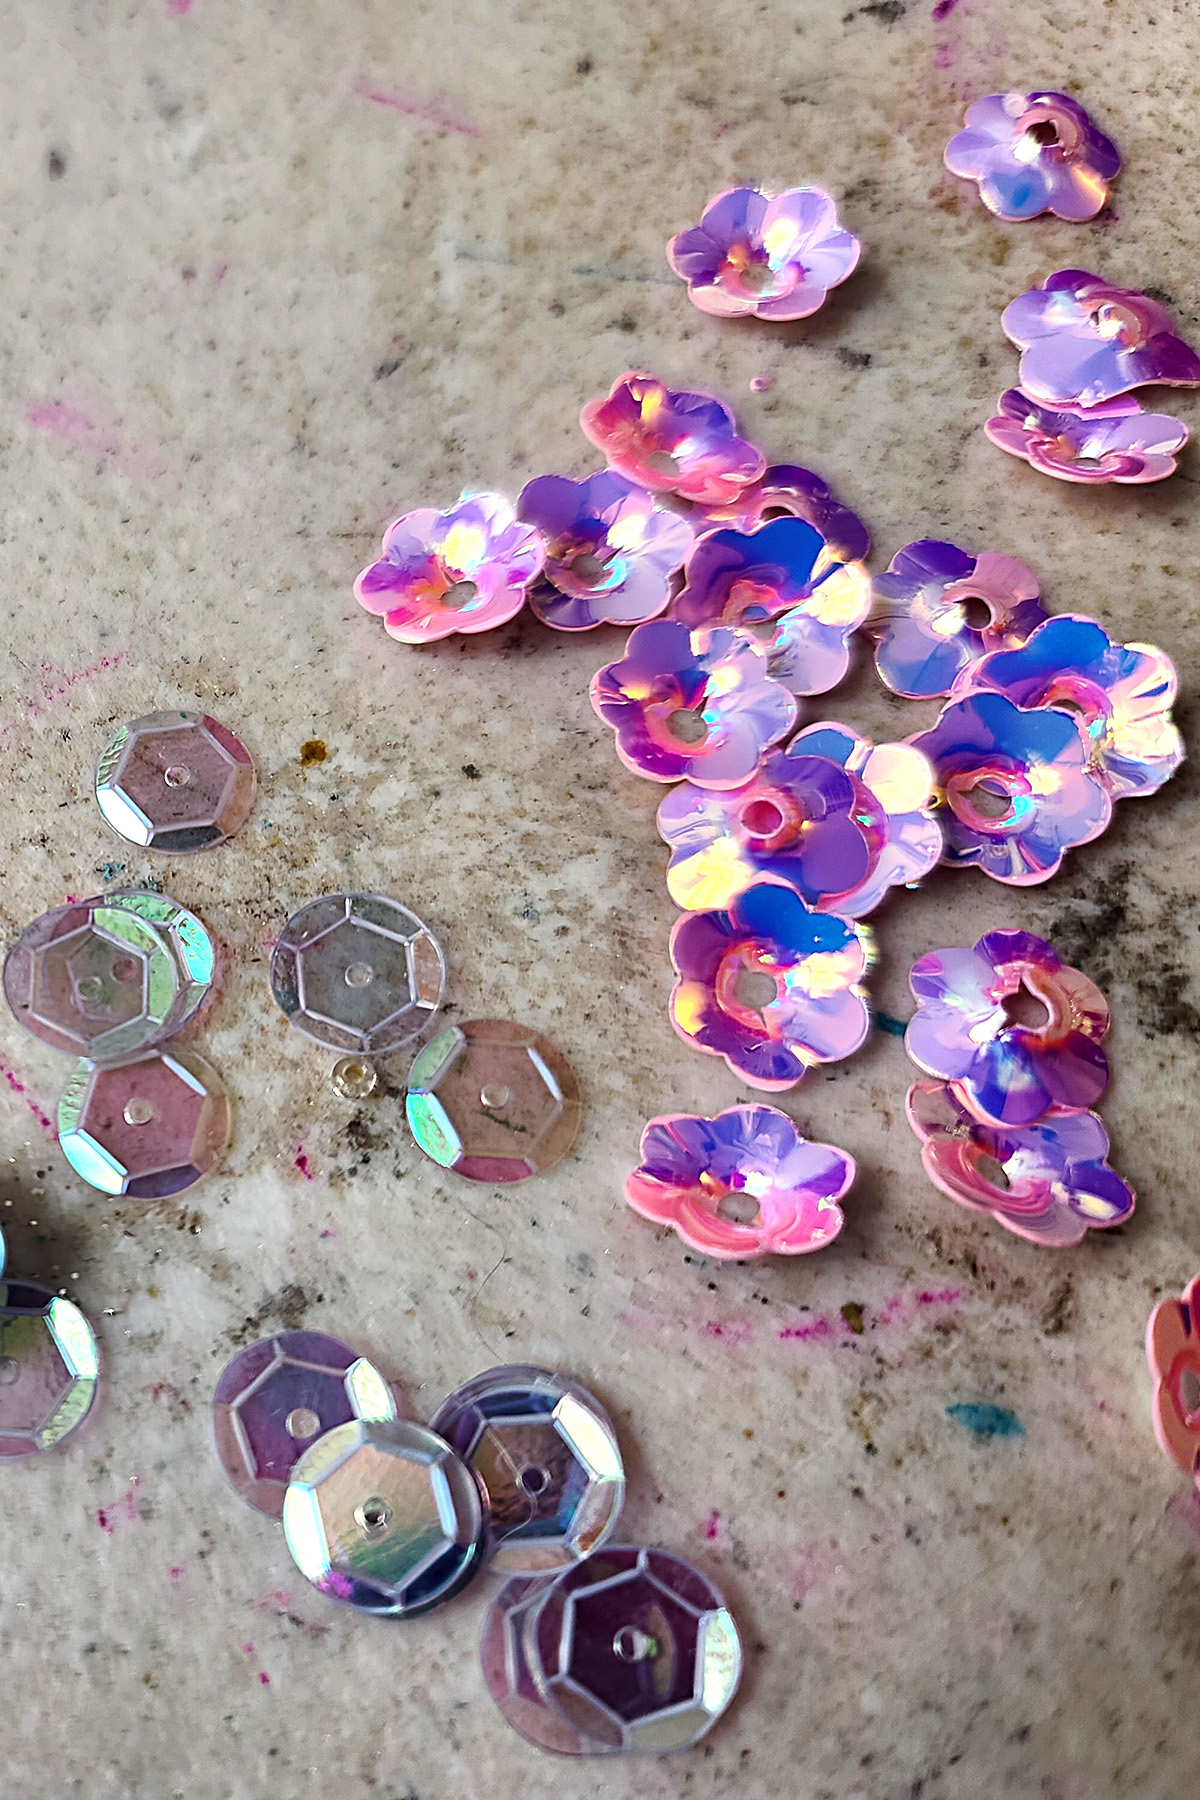 CLear iridescent sequins and pink flower shaped sequins.